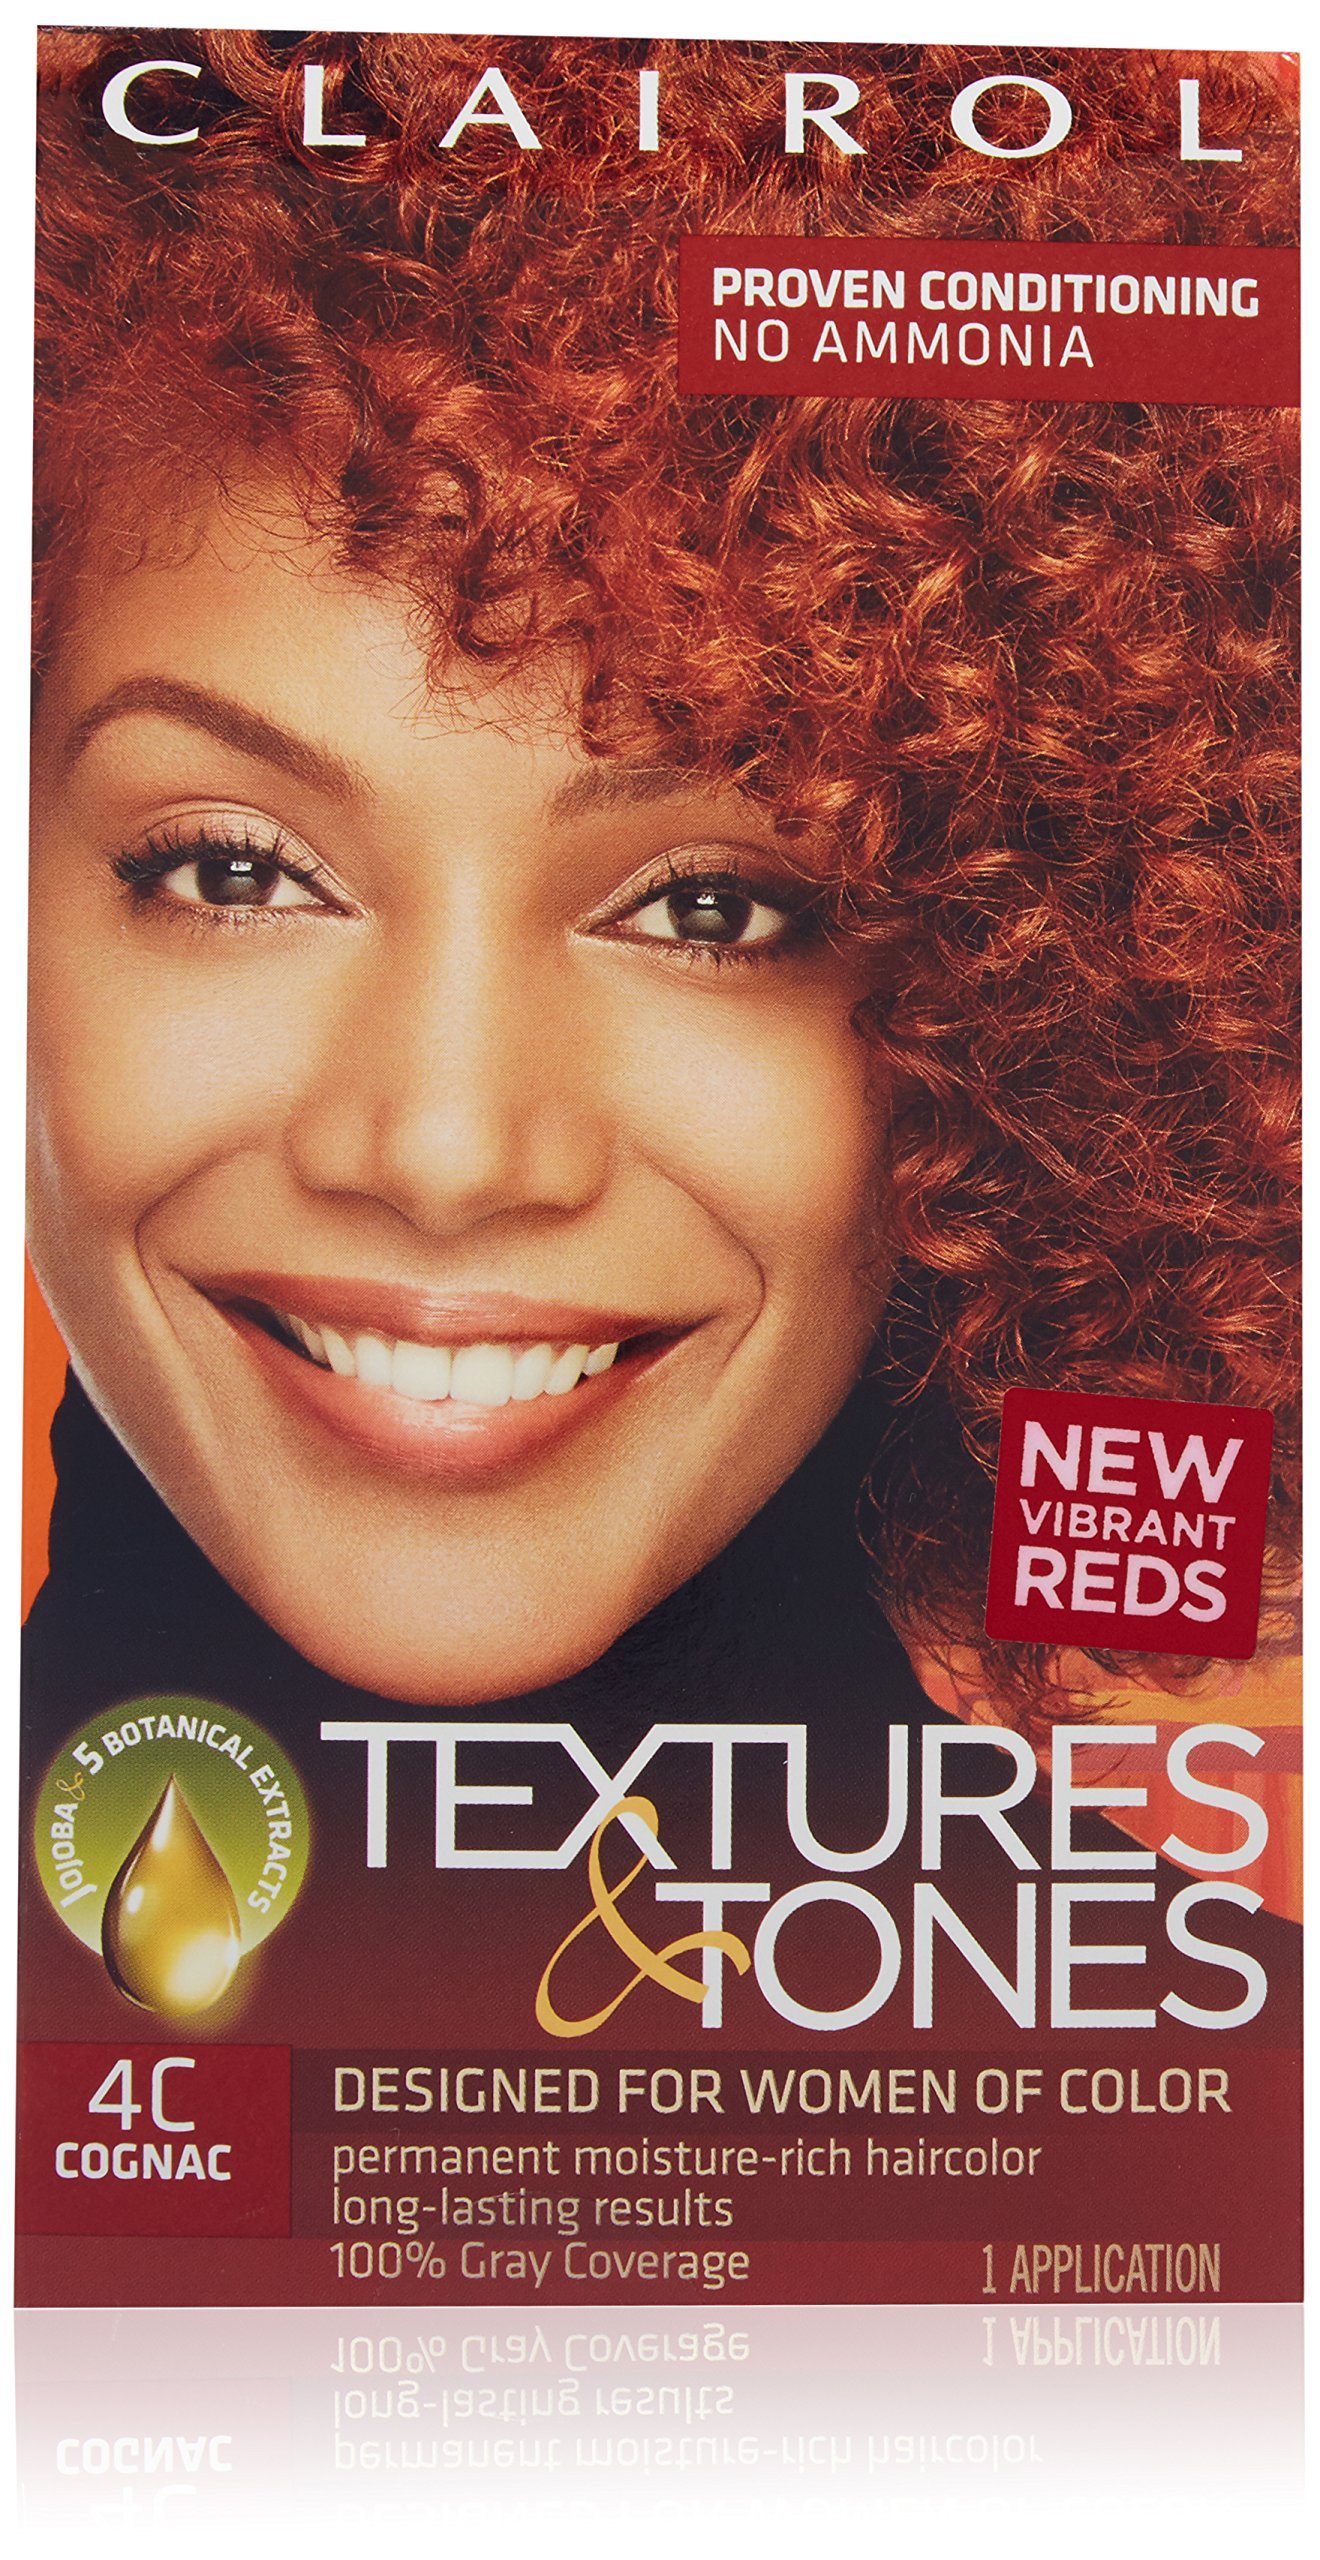 Clairol Professional Textures & Tones Kit – 4R Red Hot Red Free shipping on orders over $59 (within continental United States) Clairol Professional Textures & Tones Kit – 4R Red Hot Red. $ Be the first to review this product. Availability: In stock. SKU: Qty. Add to Cart. Share.